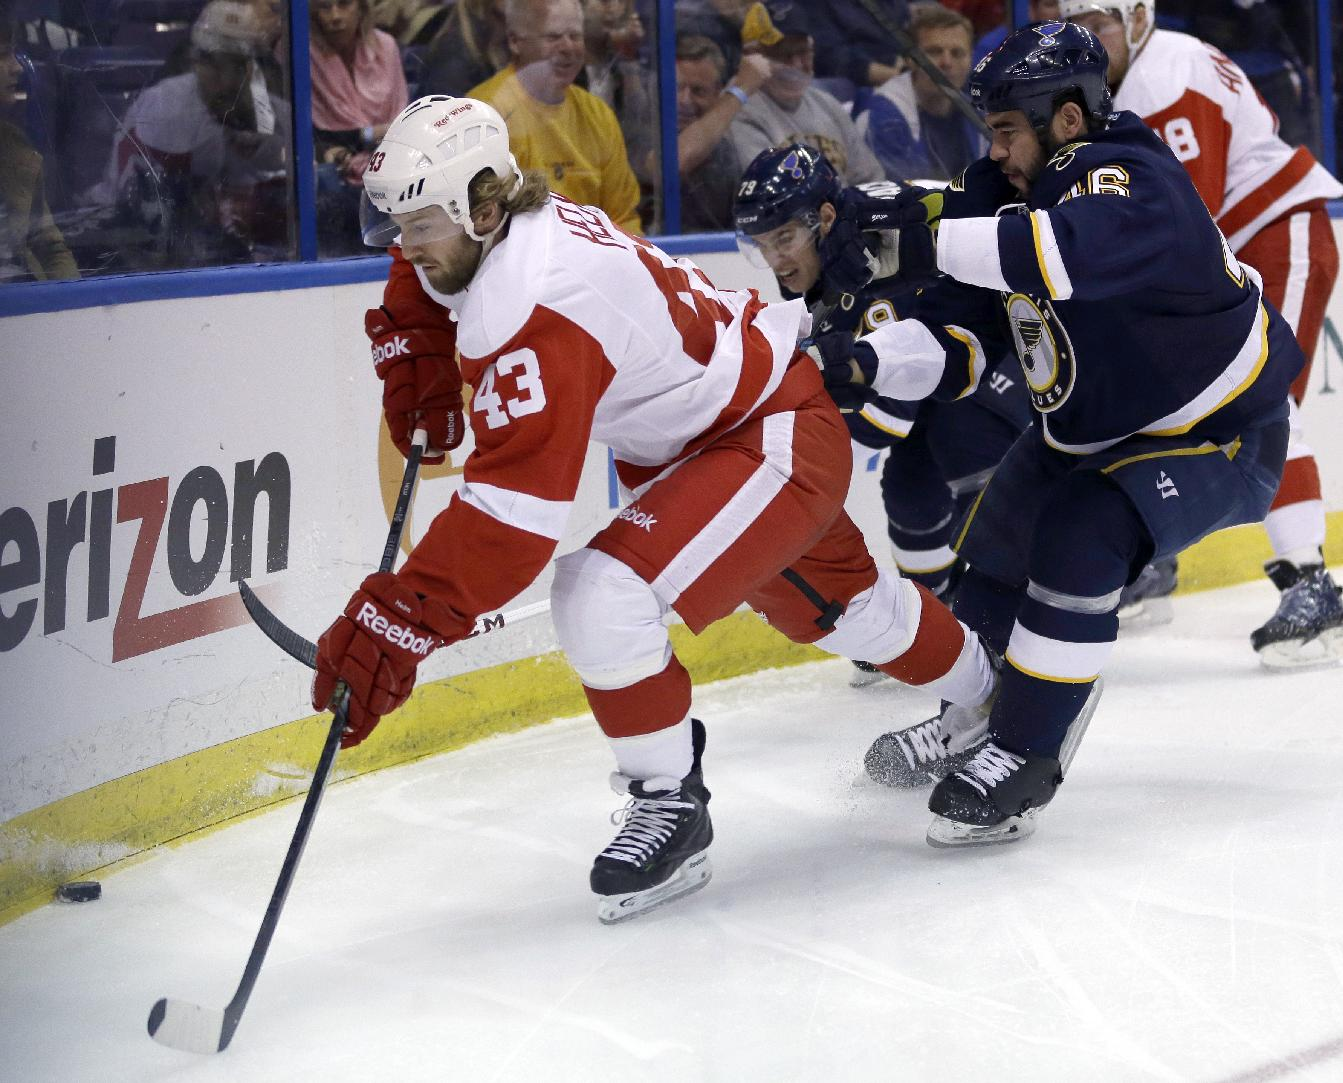 Detroit Red Wings' Darren Helm, left, reaches for a loose puck as St. Louis Blues' Adam Cracknell, center rear, and Roman Polak, of the Czech Republic, defend during the first period of an NHL hockey game Sunday, April 13, 2014, in St. Louis